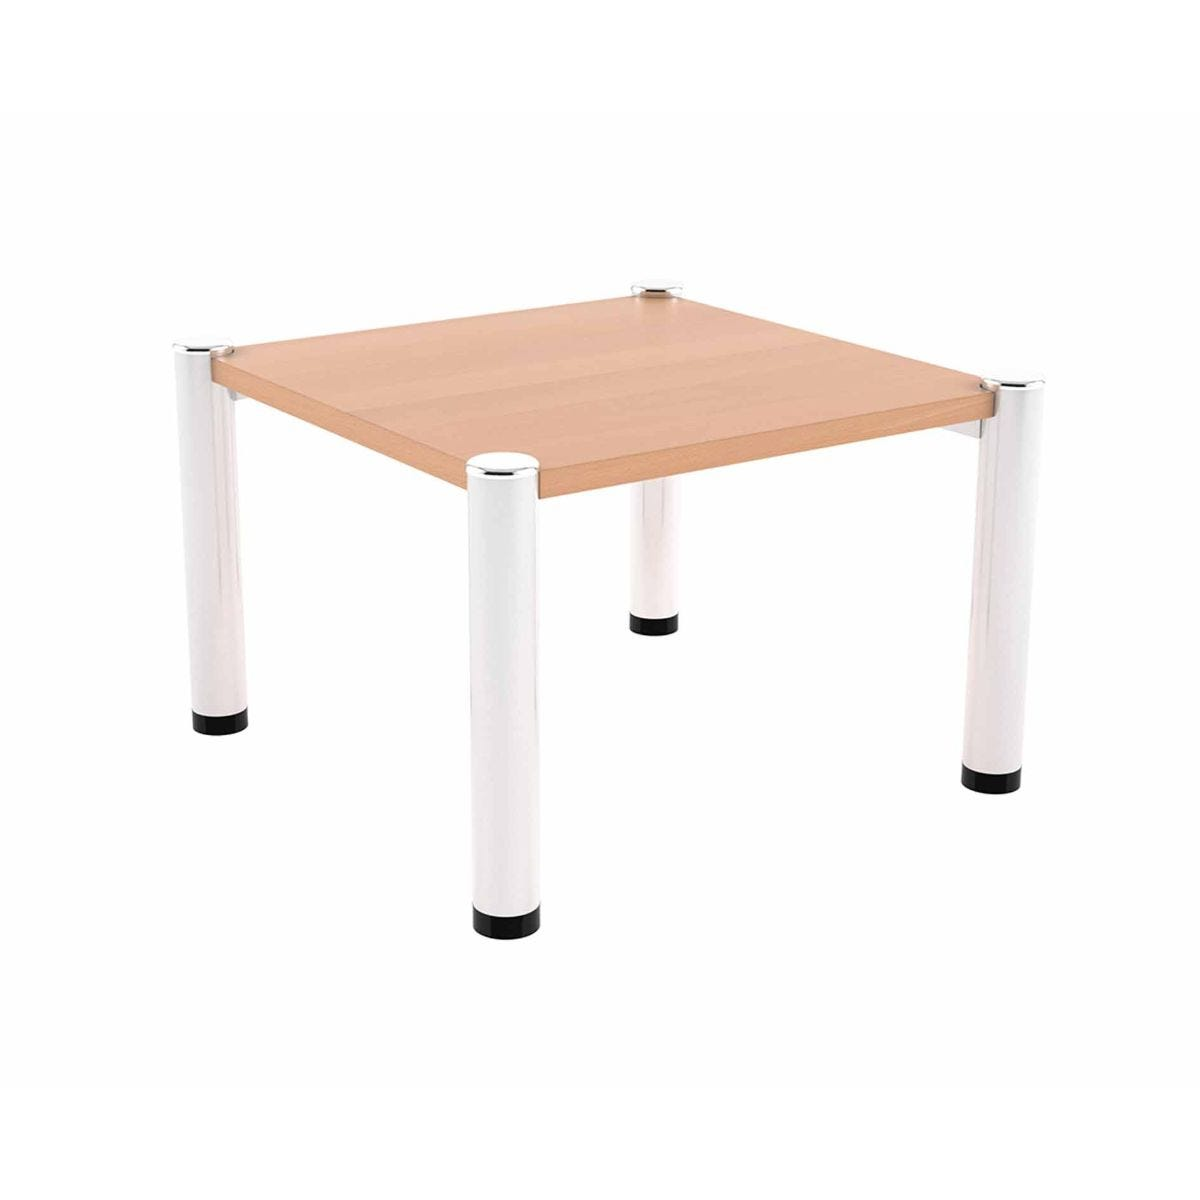 TC Office Iceberg Square Reception Coffee Table, Beech